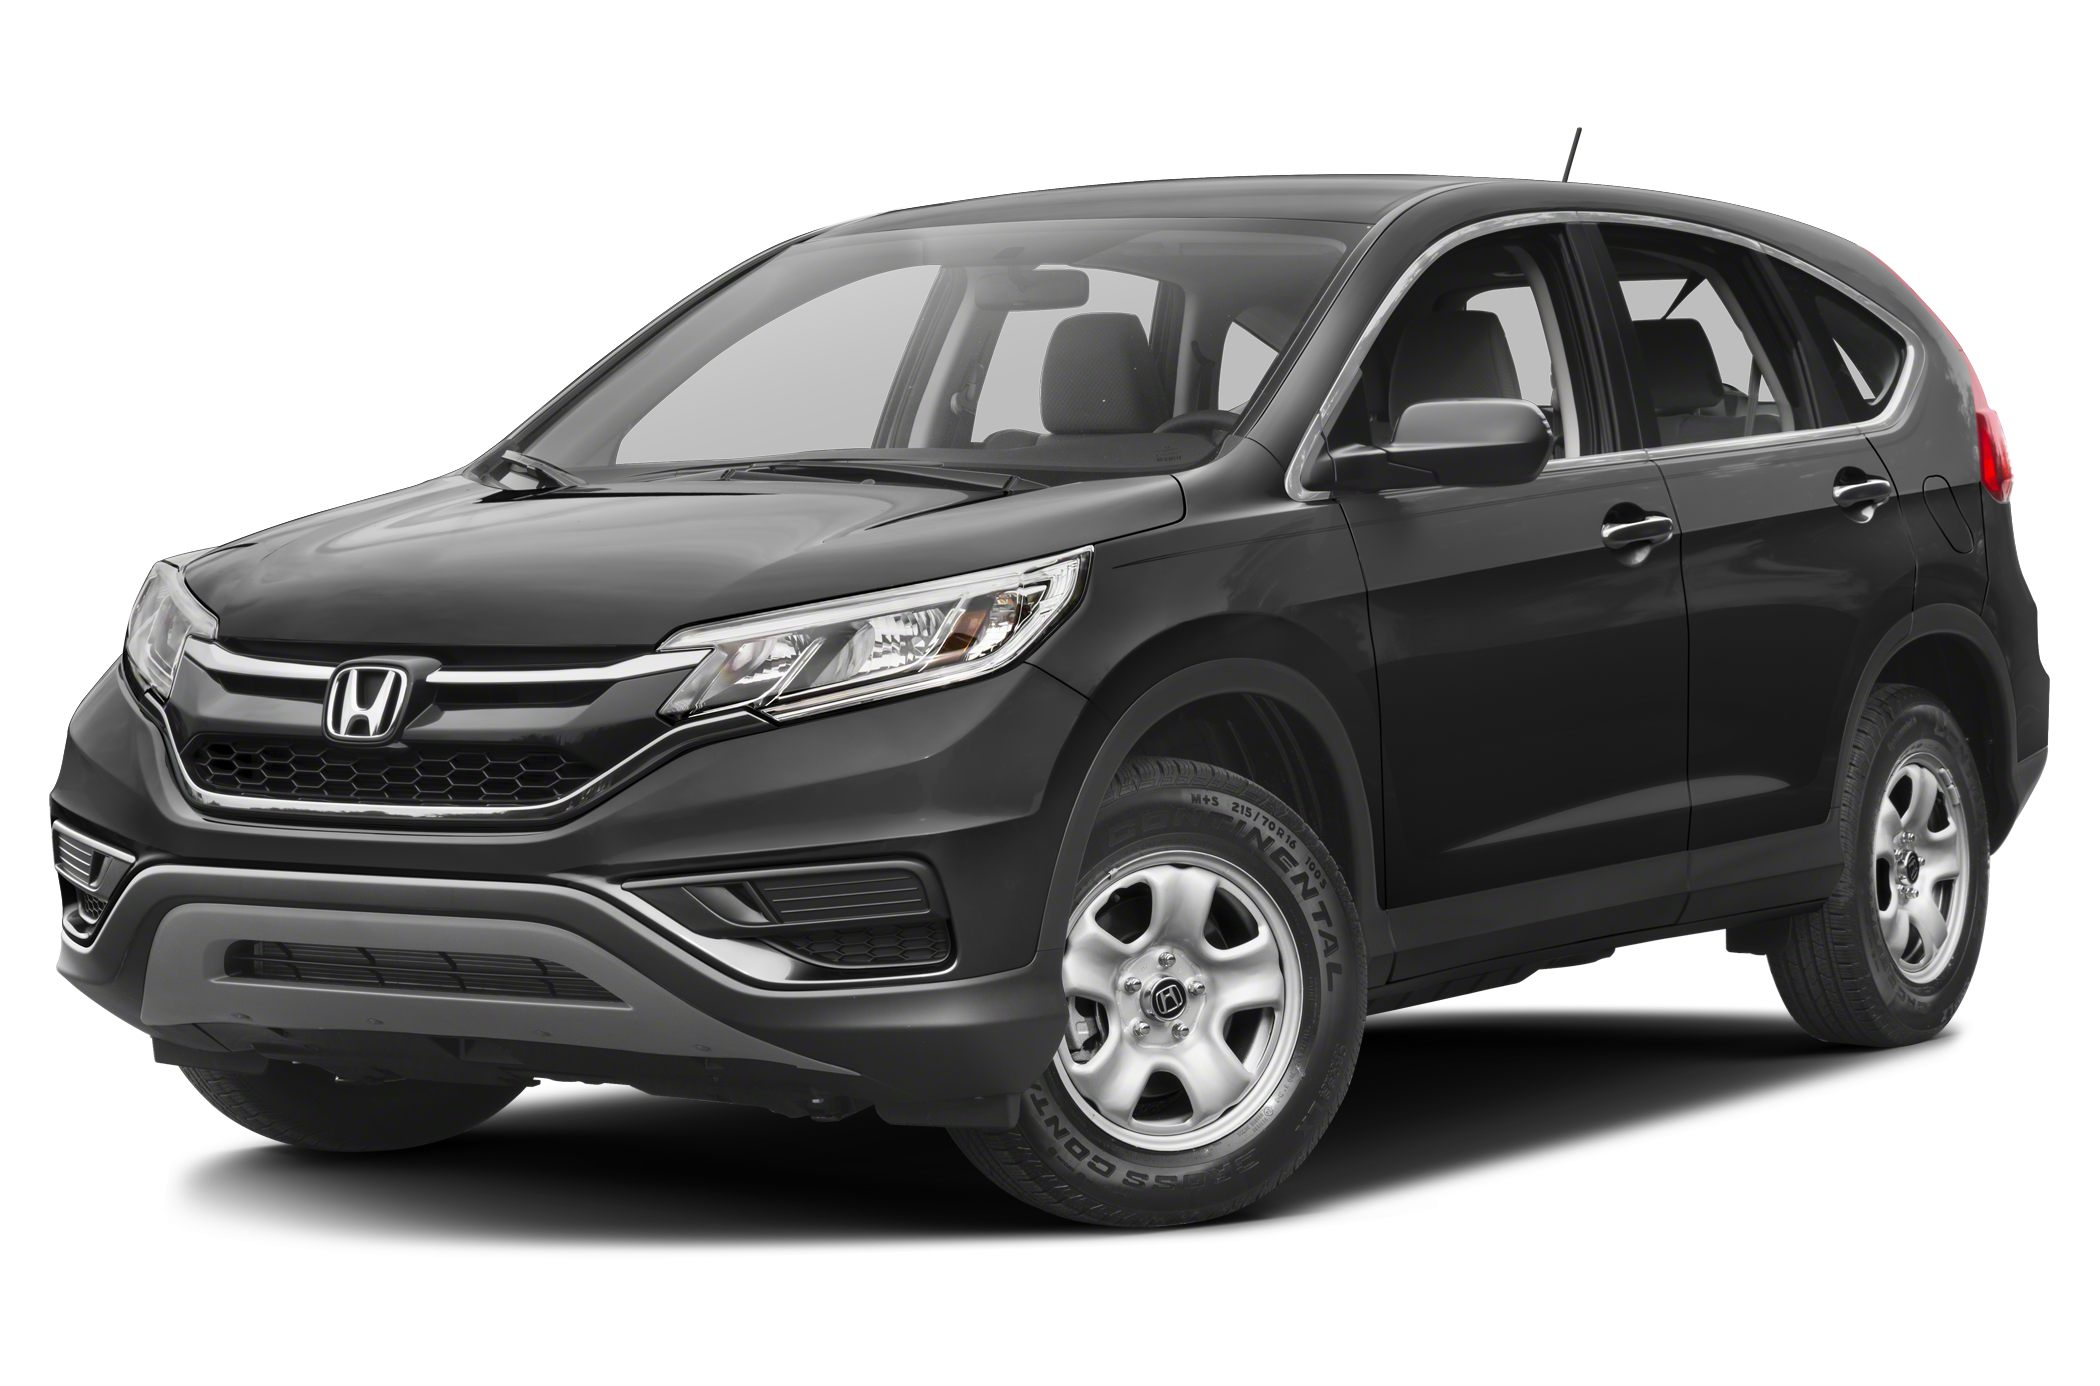 2016 Honda CR-V LX Get a grip with amazing traction control Seize the road with solid stability a